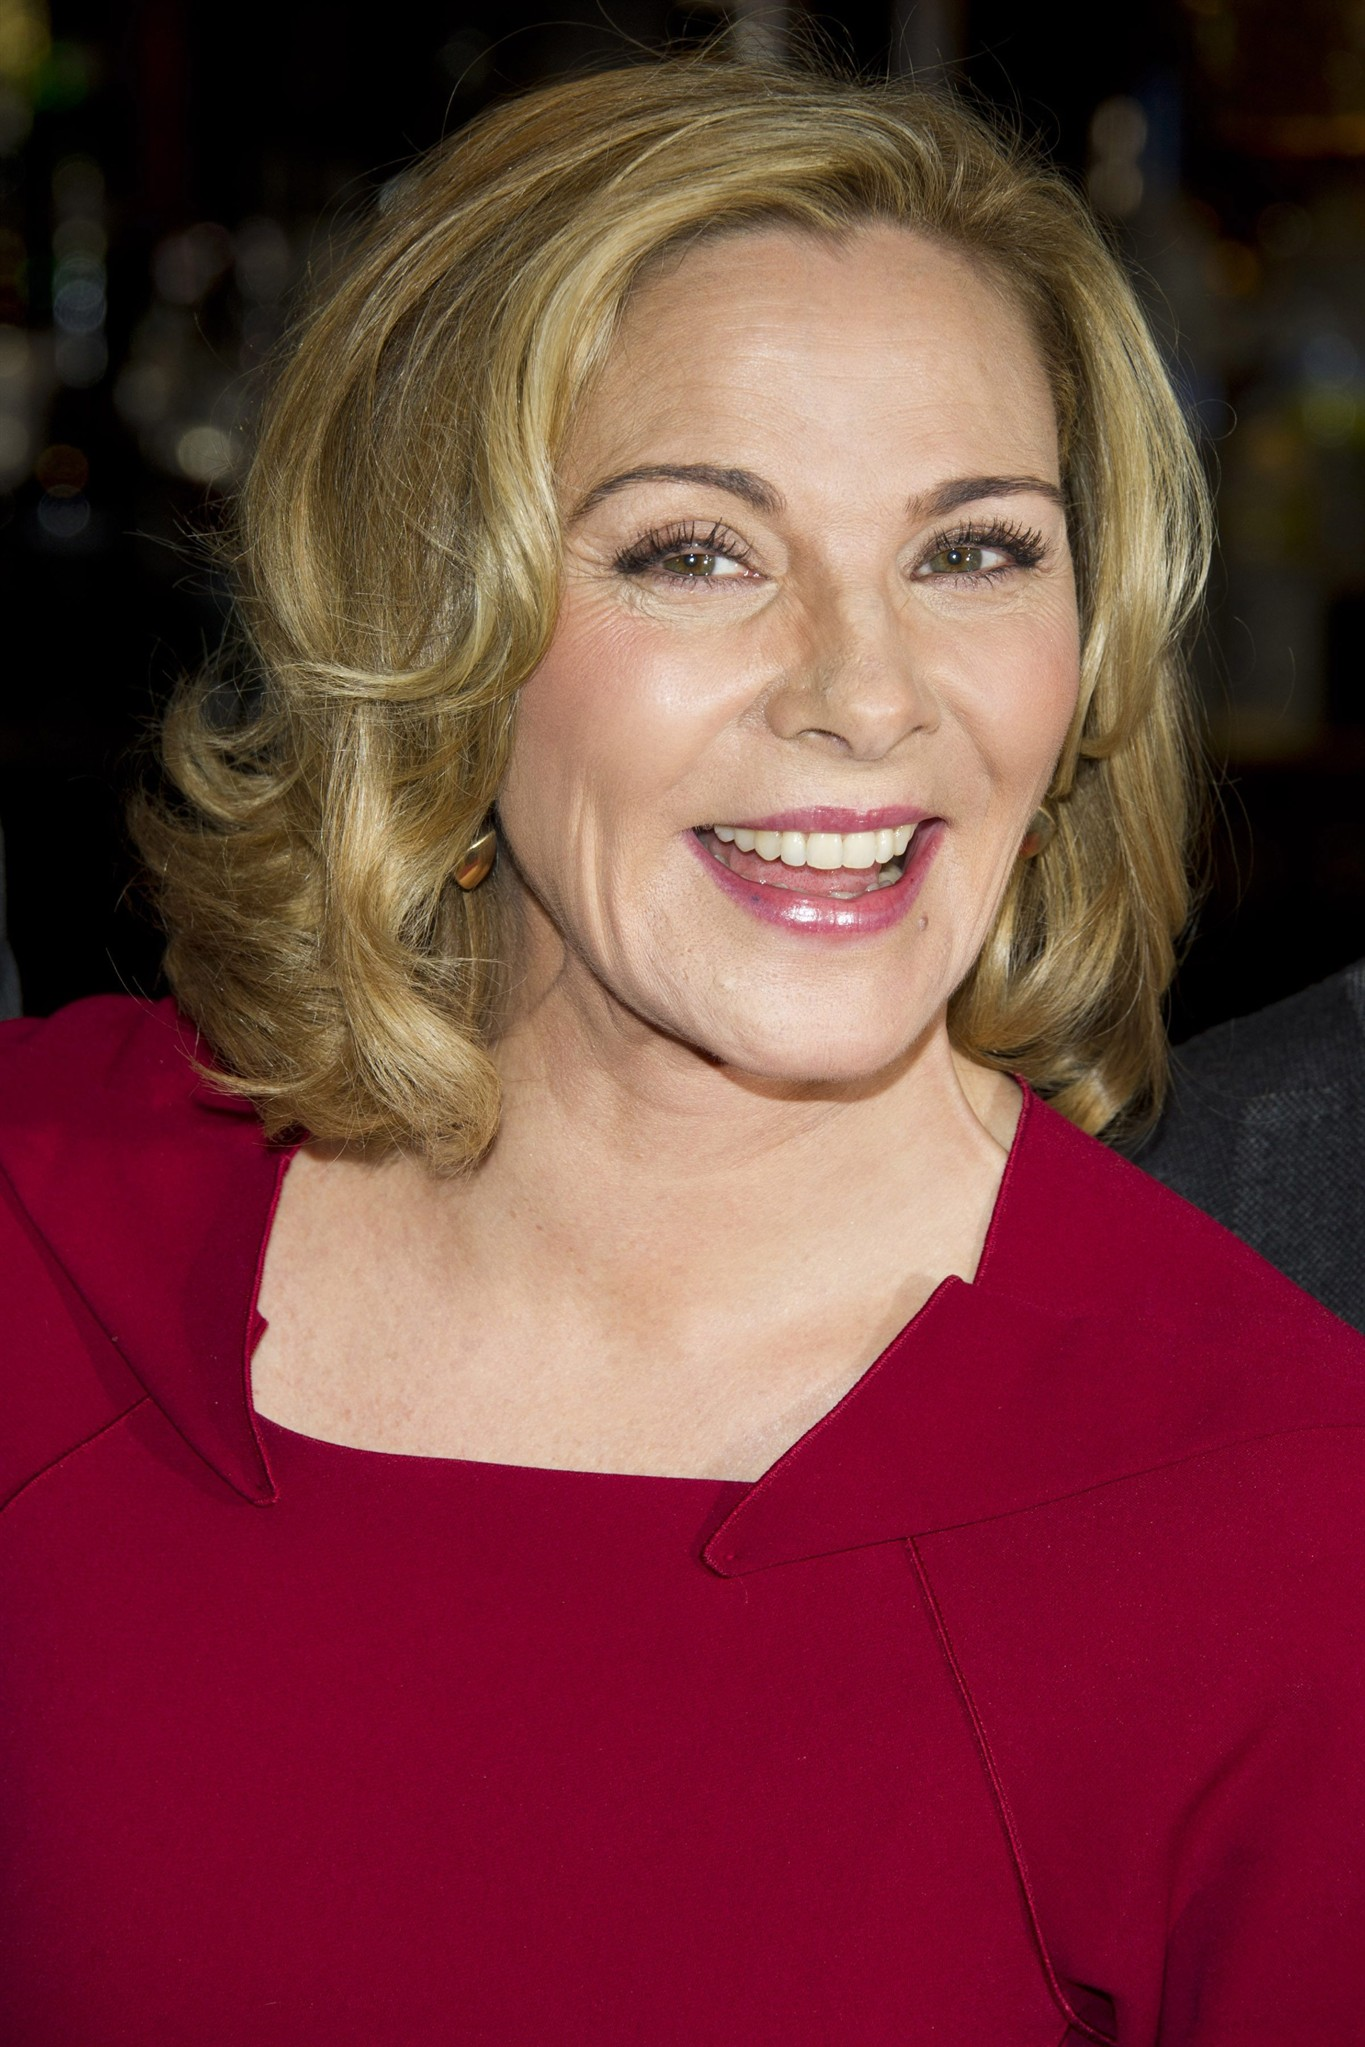 'Sex and the City' star Kim Cattrall withdraws from London ... Kim Cattrall